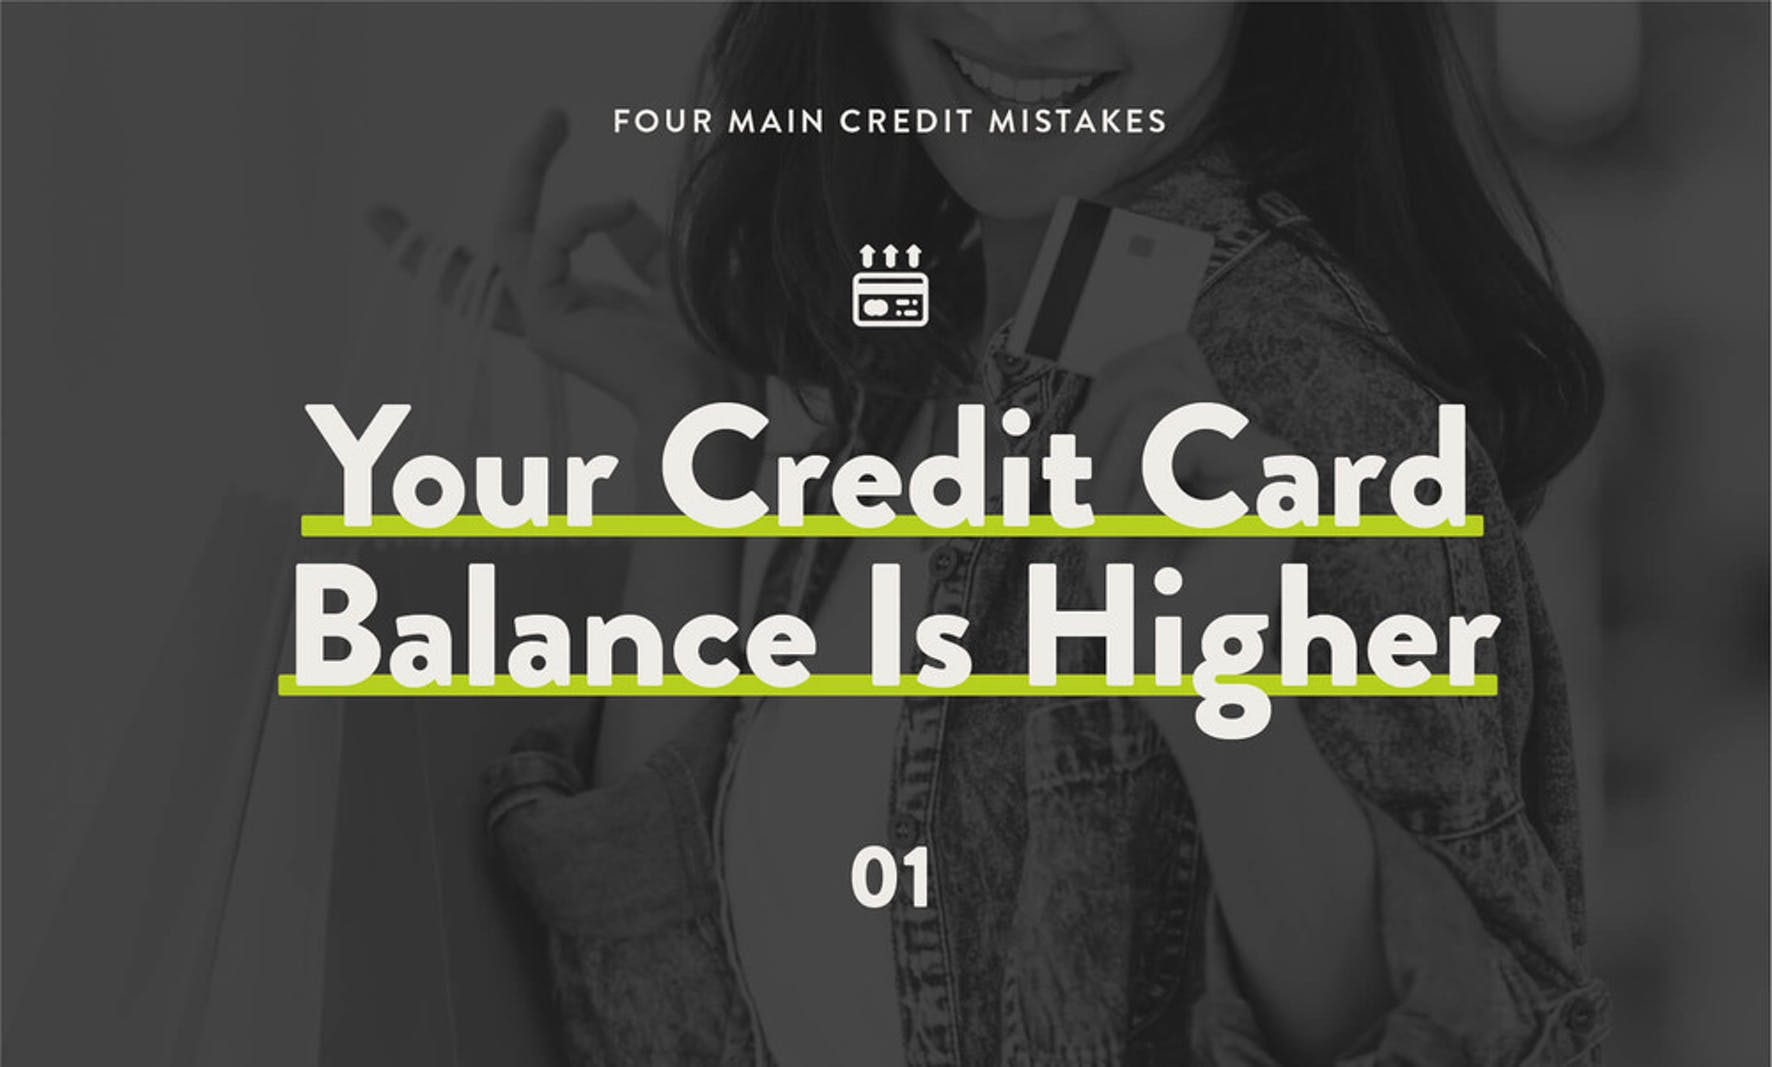 4 Main Credit Mistakes - Your Credit Card Balance Is Higher